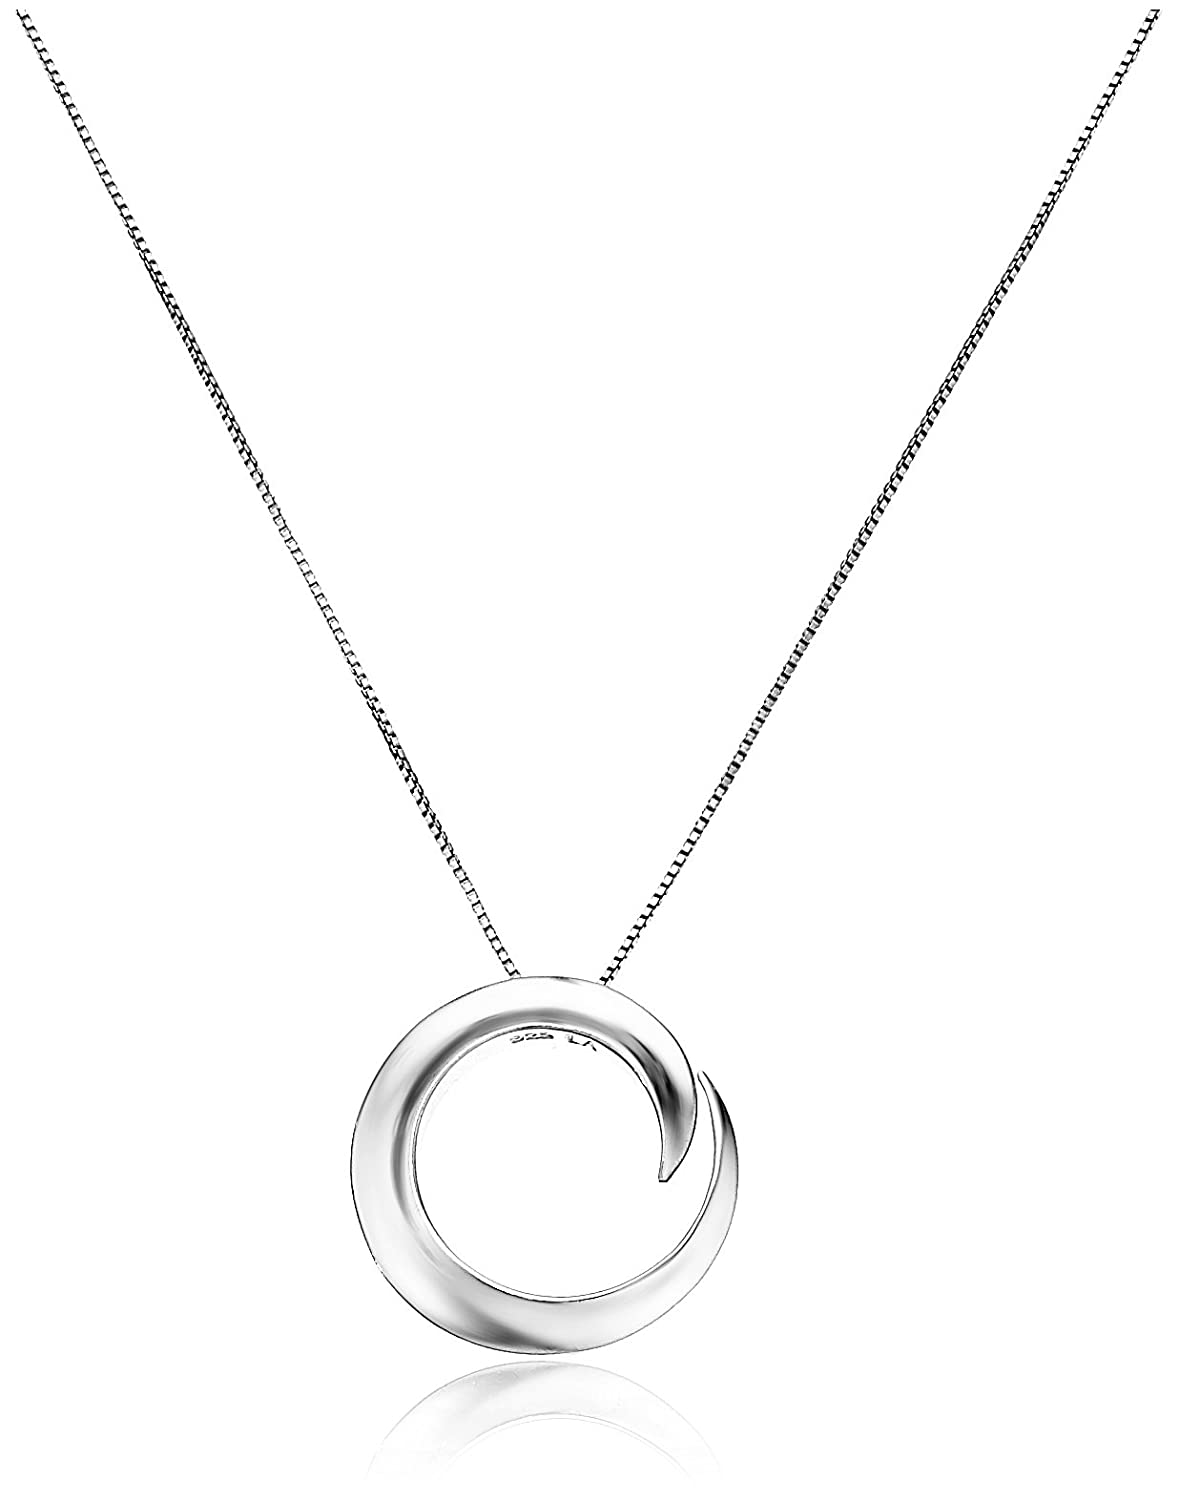 Amazon sterling silver a journey is best measured by friends amazon sterling silver a journey is best measured by friends not miles circle pendant necklace 18 friendship necklace jewelry aloadofball Images